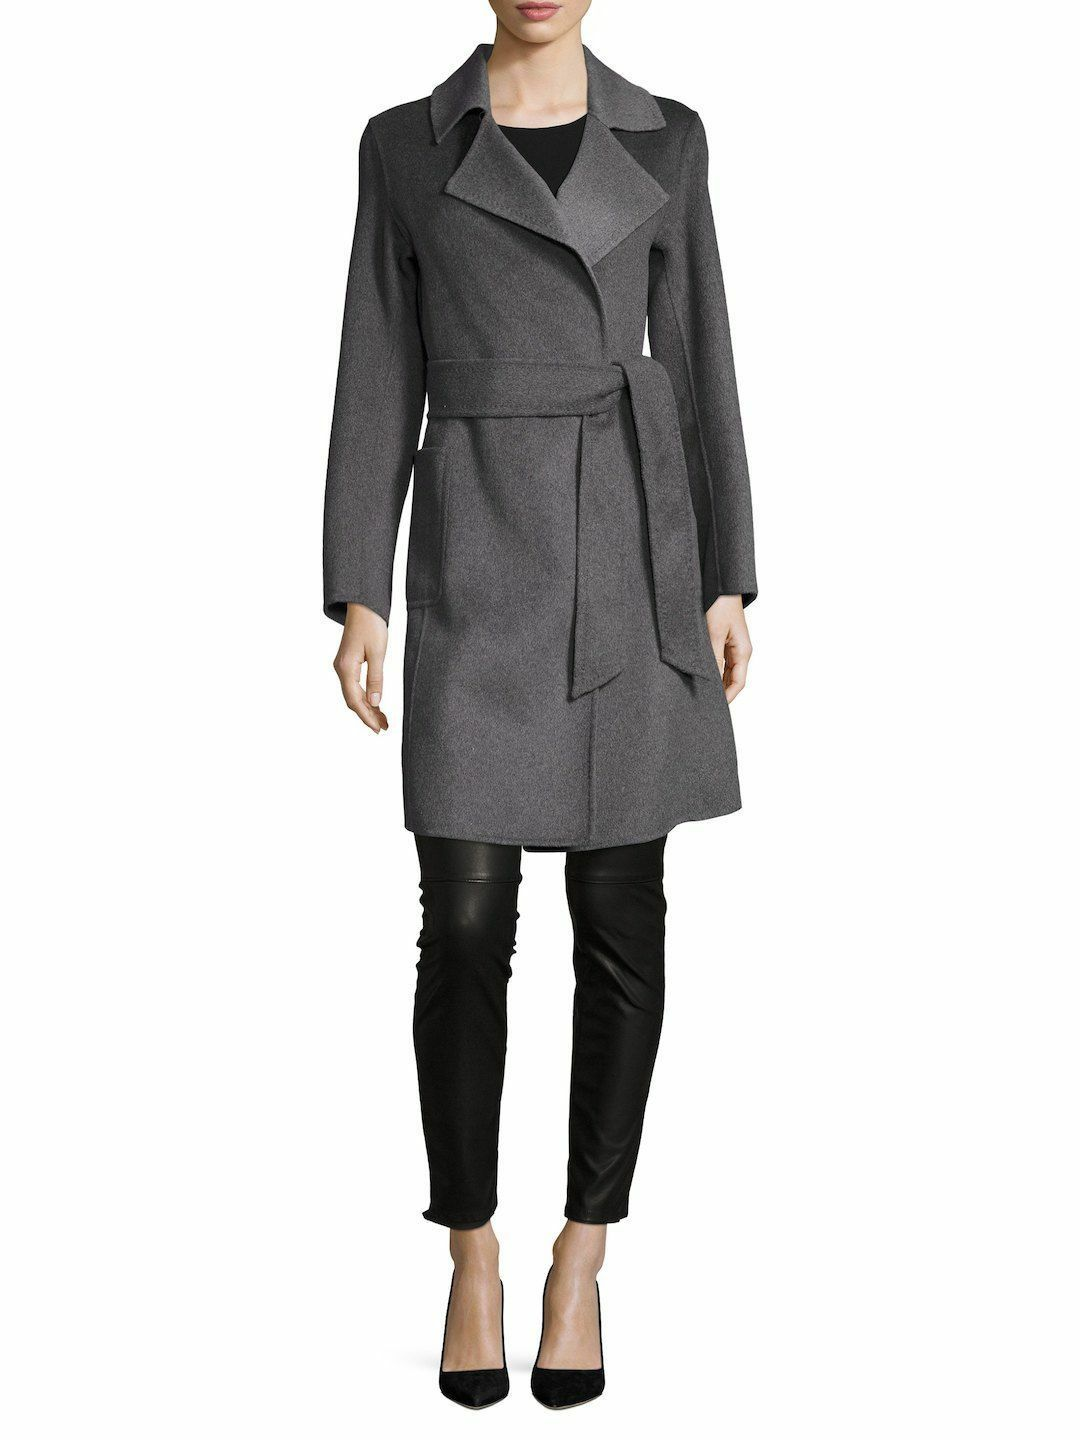 NWT NANETTE LEPORE HEATHER GREY DOUBLE FACED WOOL WRAP BELTED COAT SIZE L